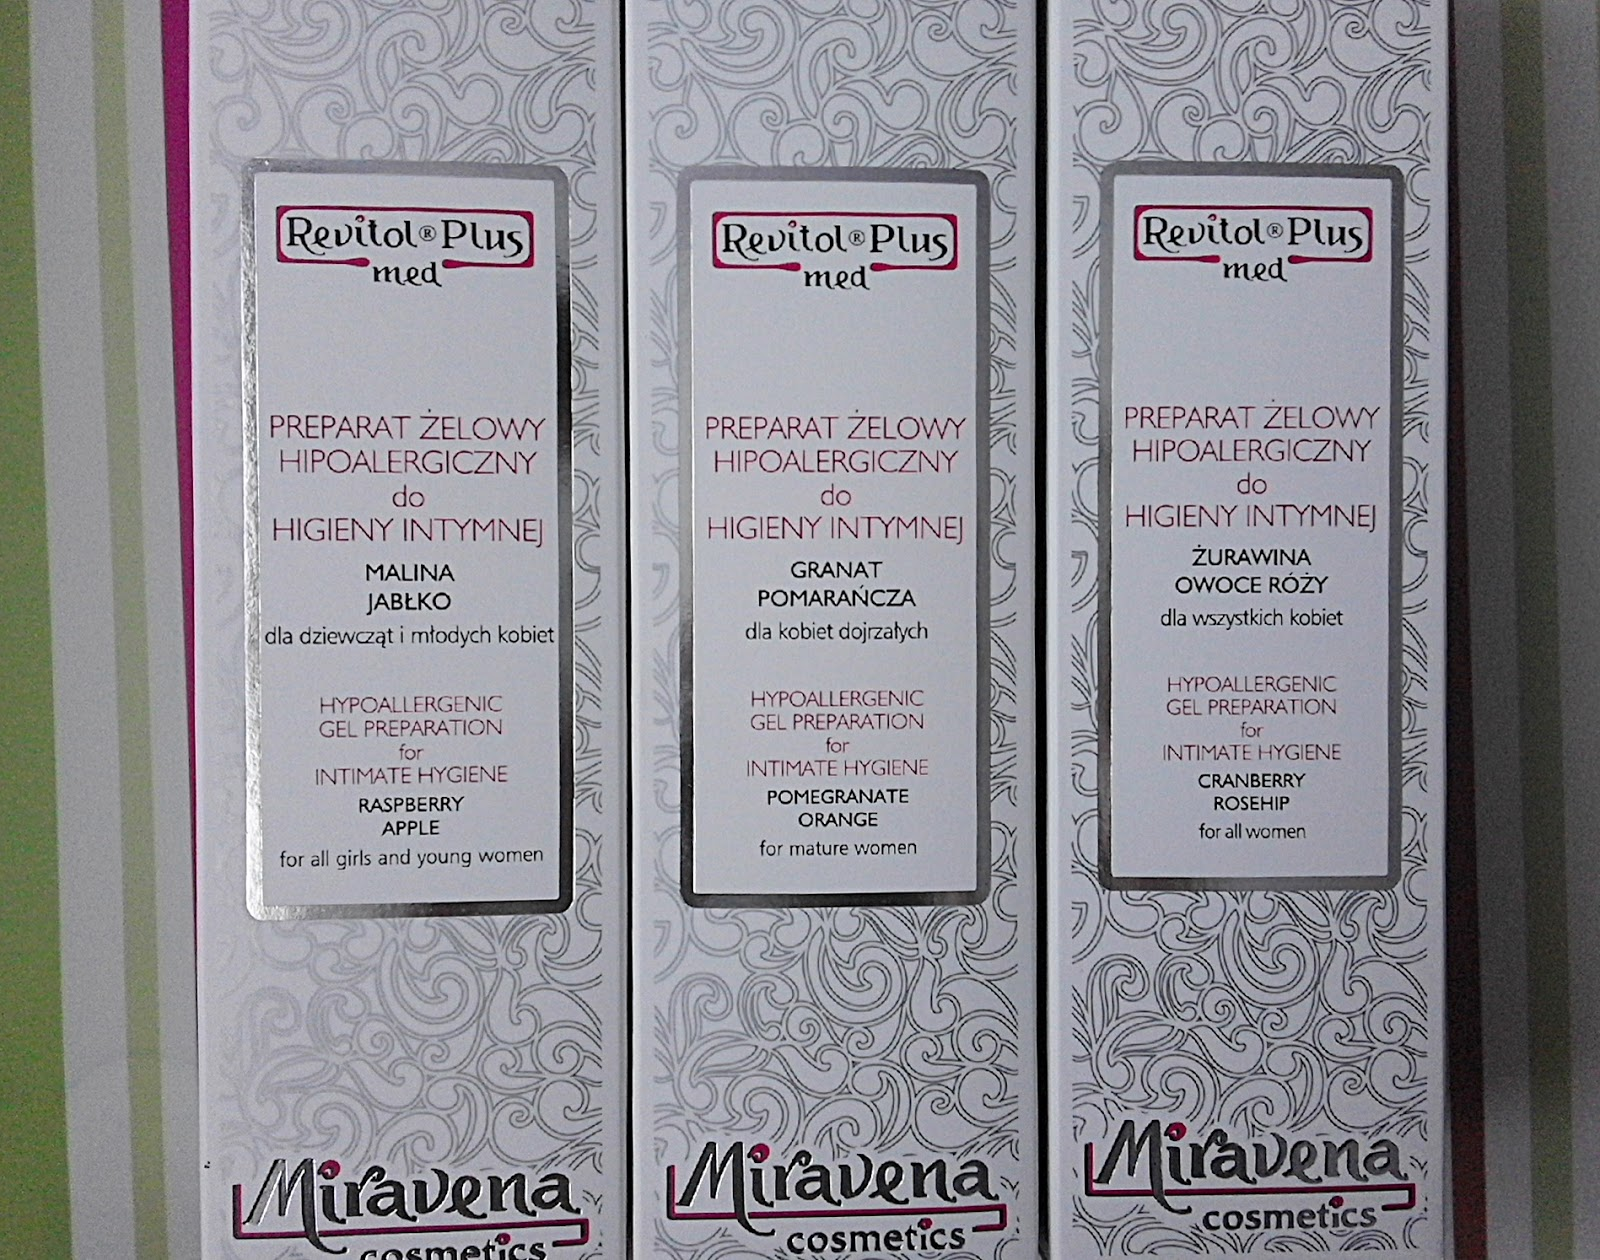 Miravena cosmetics preparaty do higieny intymnej